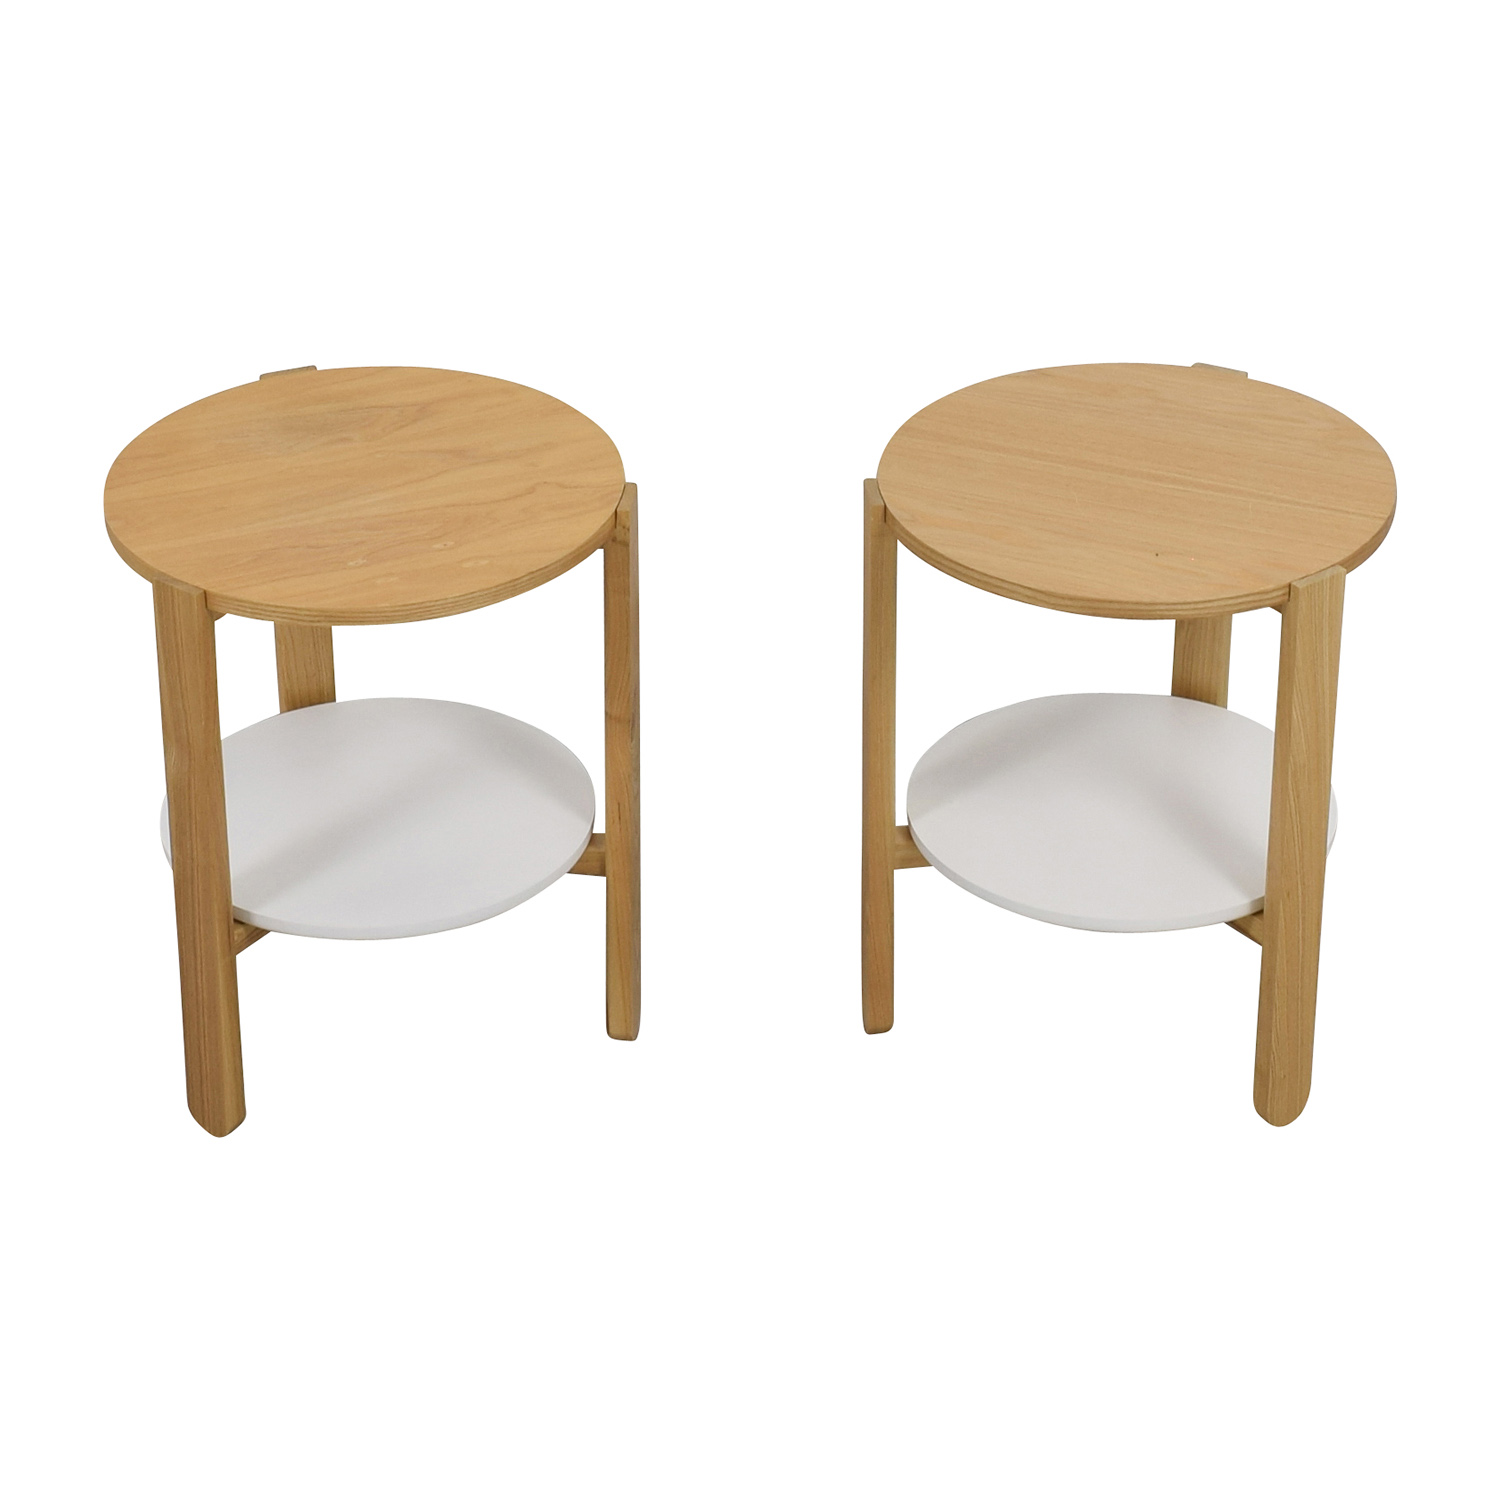 Umbra Umbra Two Toned Round Wood Side Tables Used